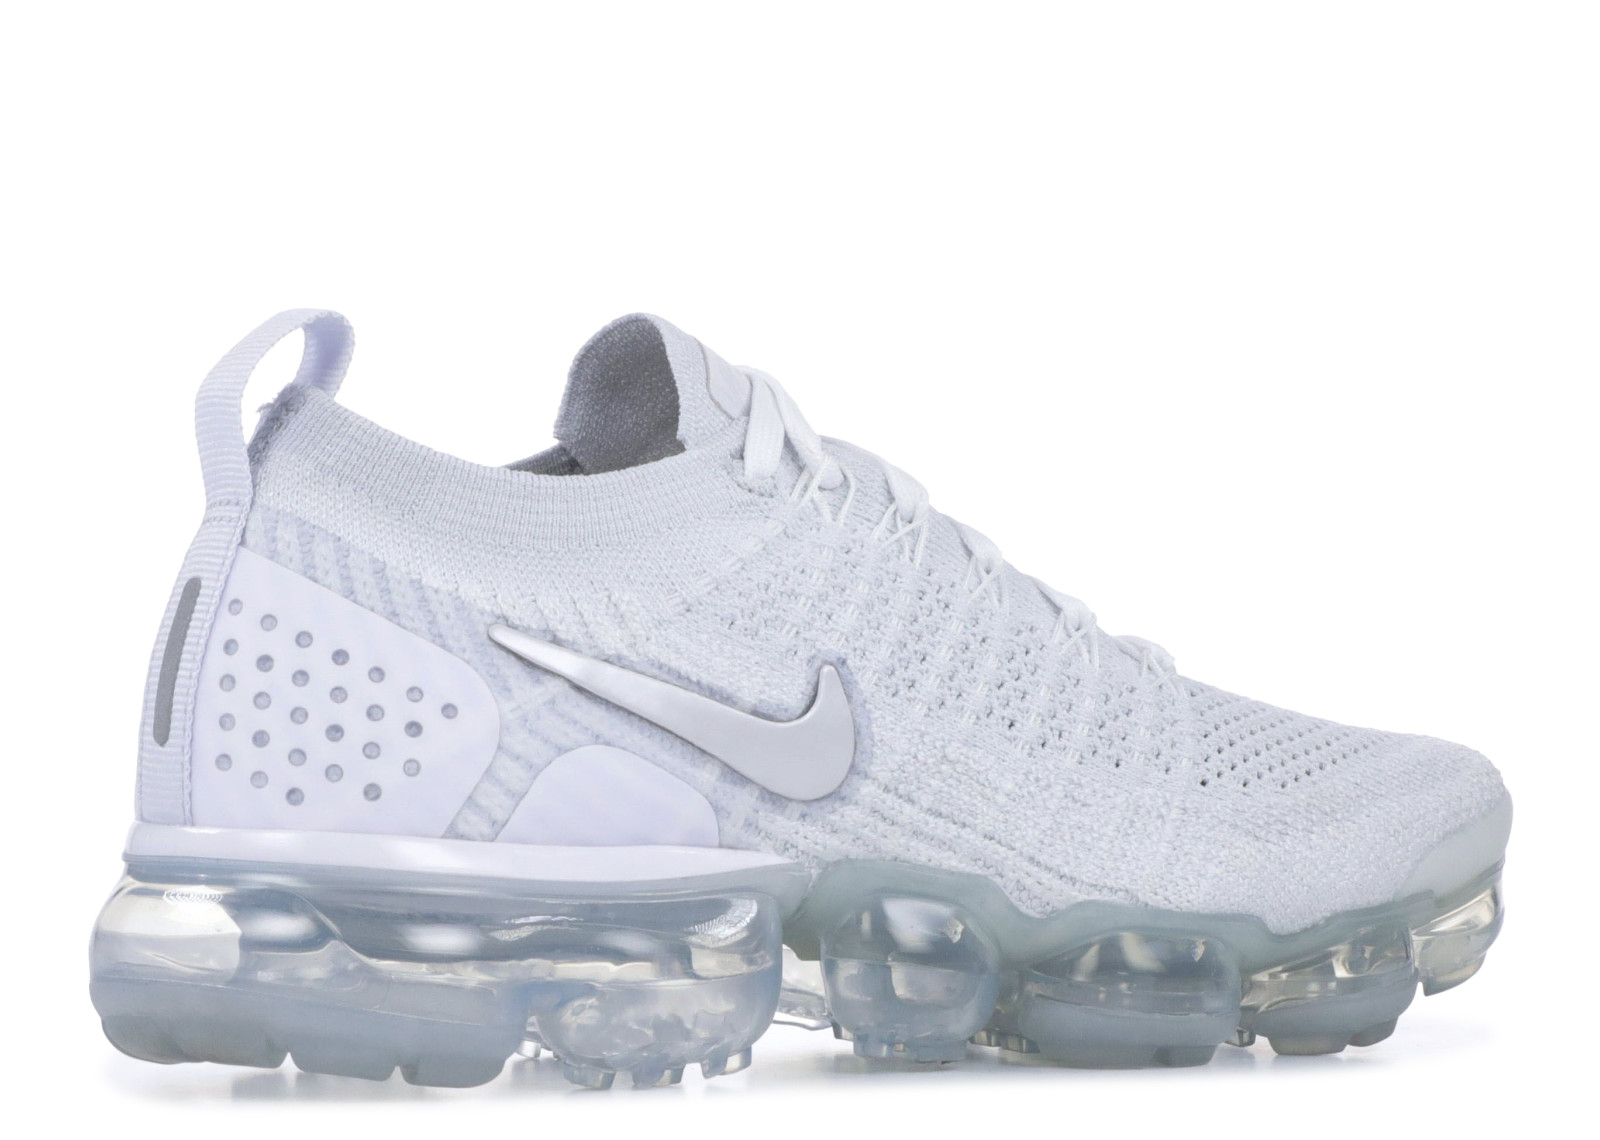 save off a1c95 8258e Nike Air VaporMax Flyknit 2 White Vast Grey (W) - 3